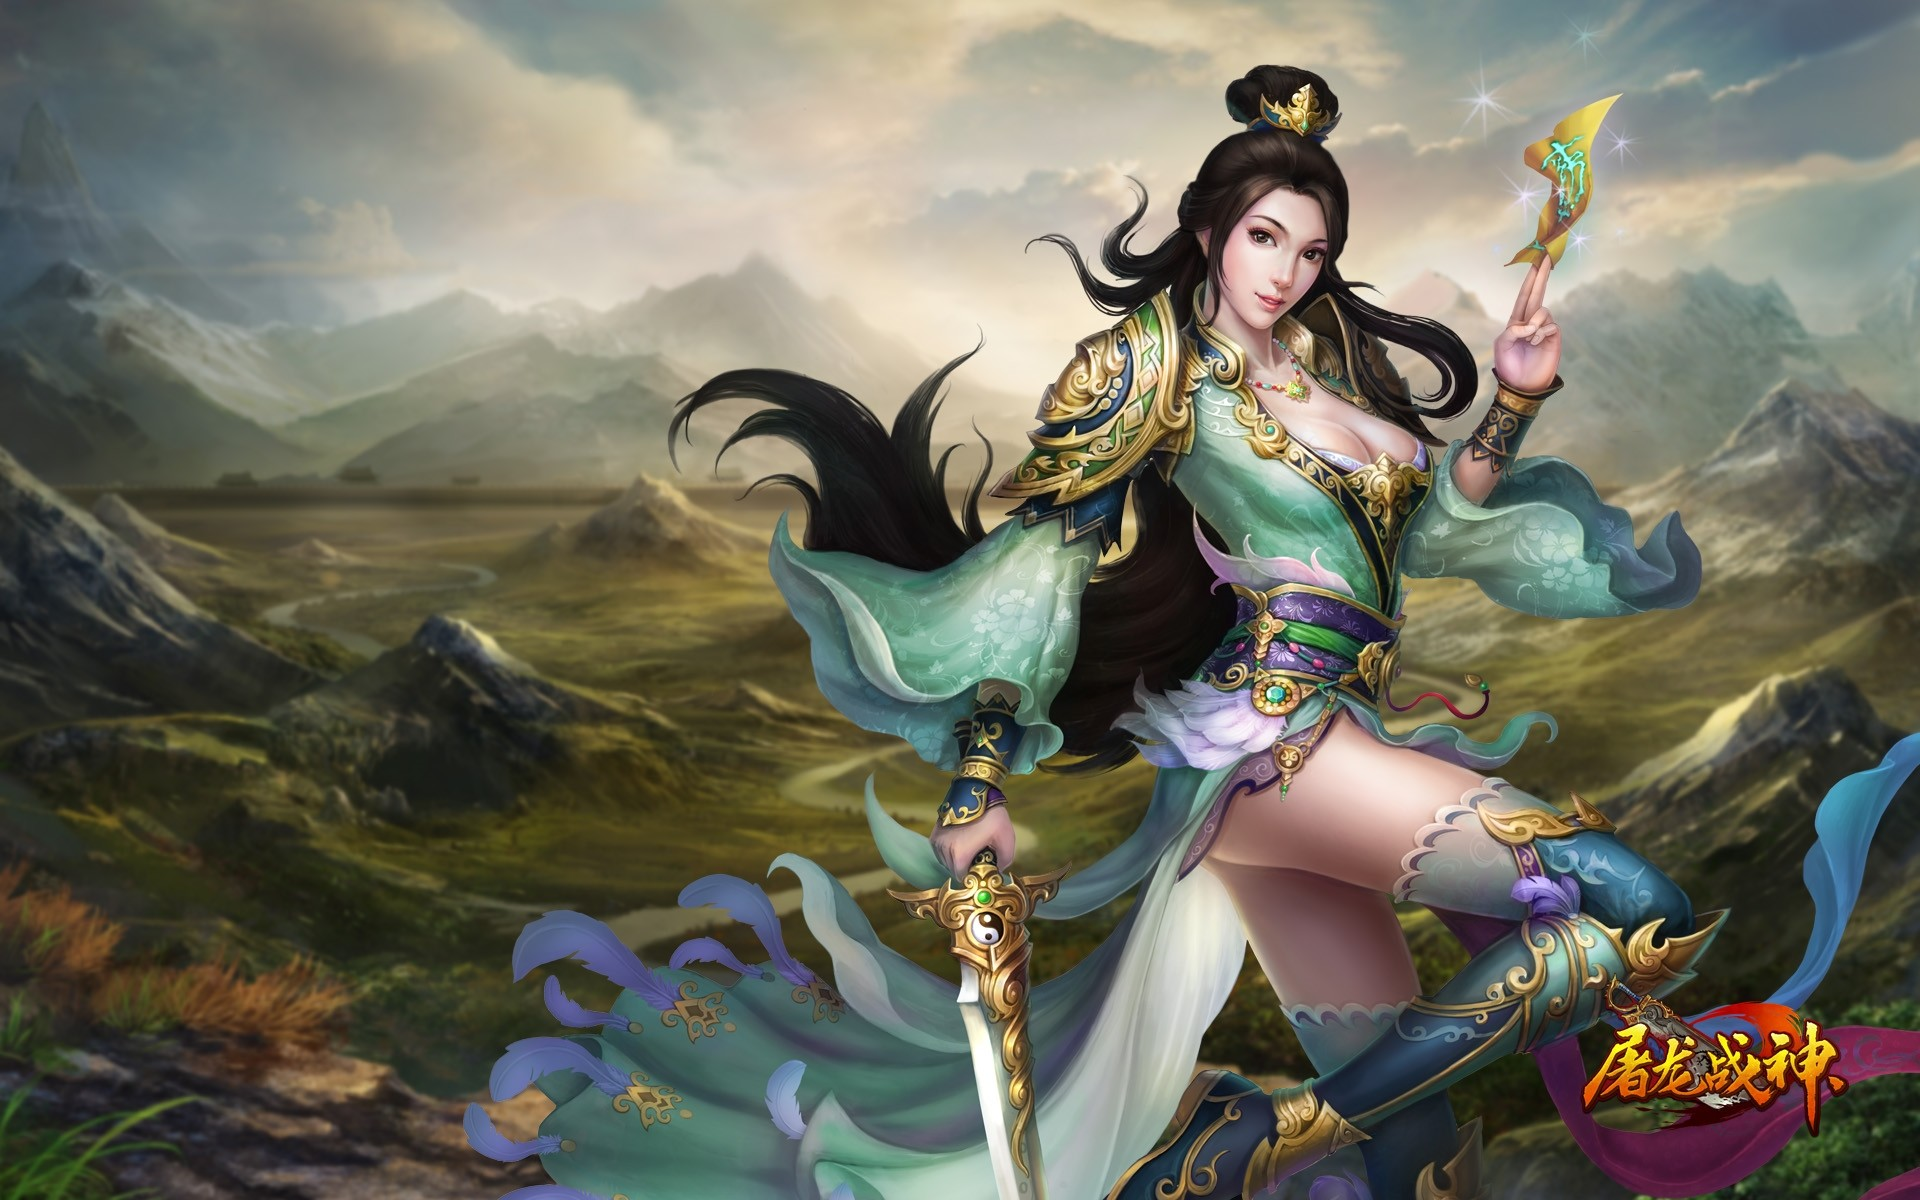 Anime Inspired Hd Fantasy Wallpapers For Your Collection: Asian Female Warrior Wallpaper (69+ Images